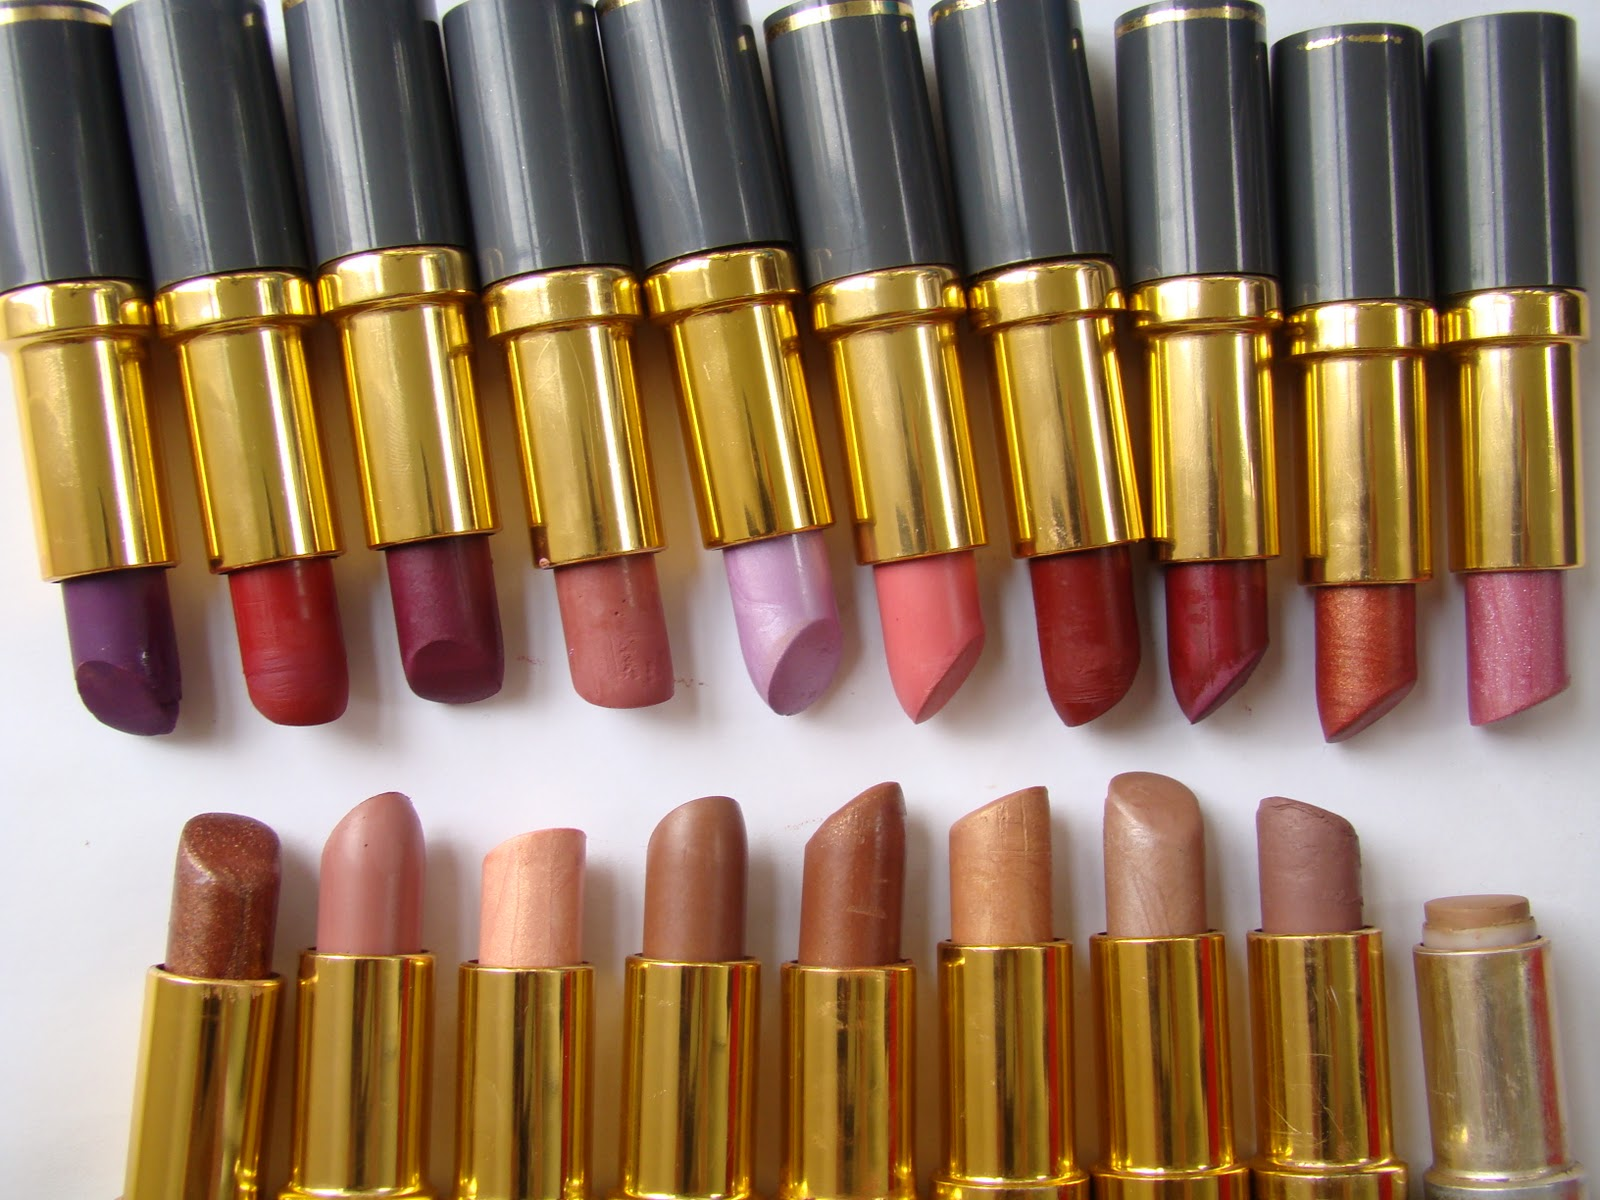 Colour care london lipstick price - Medora Of London Lipsticks Collection And Reviews